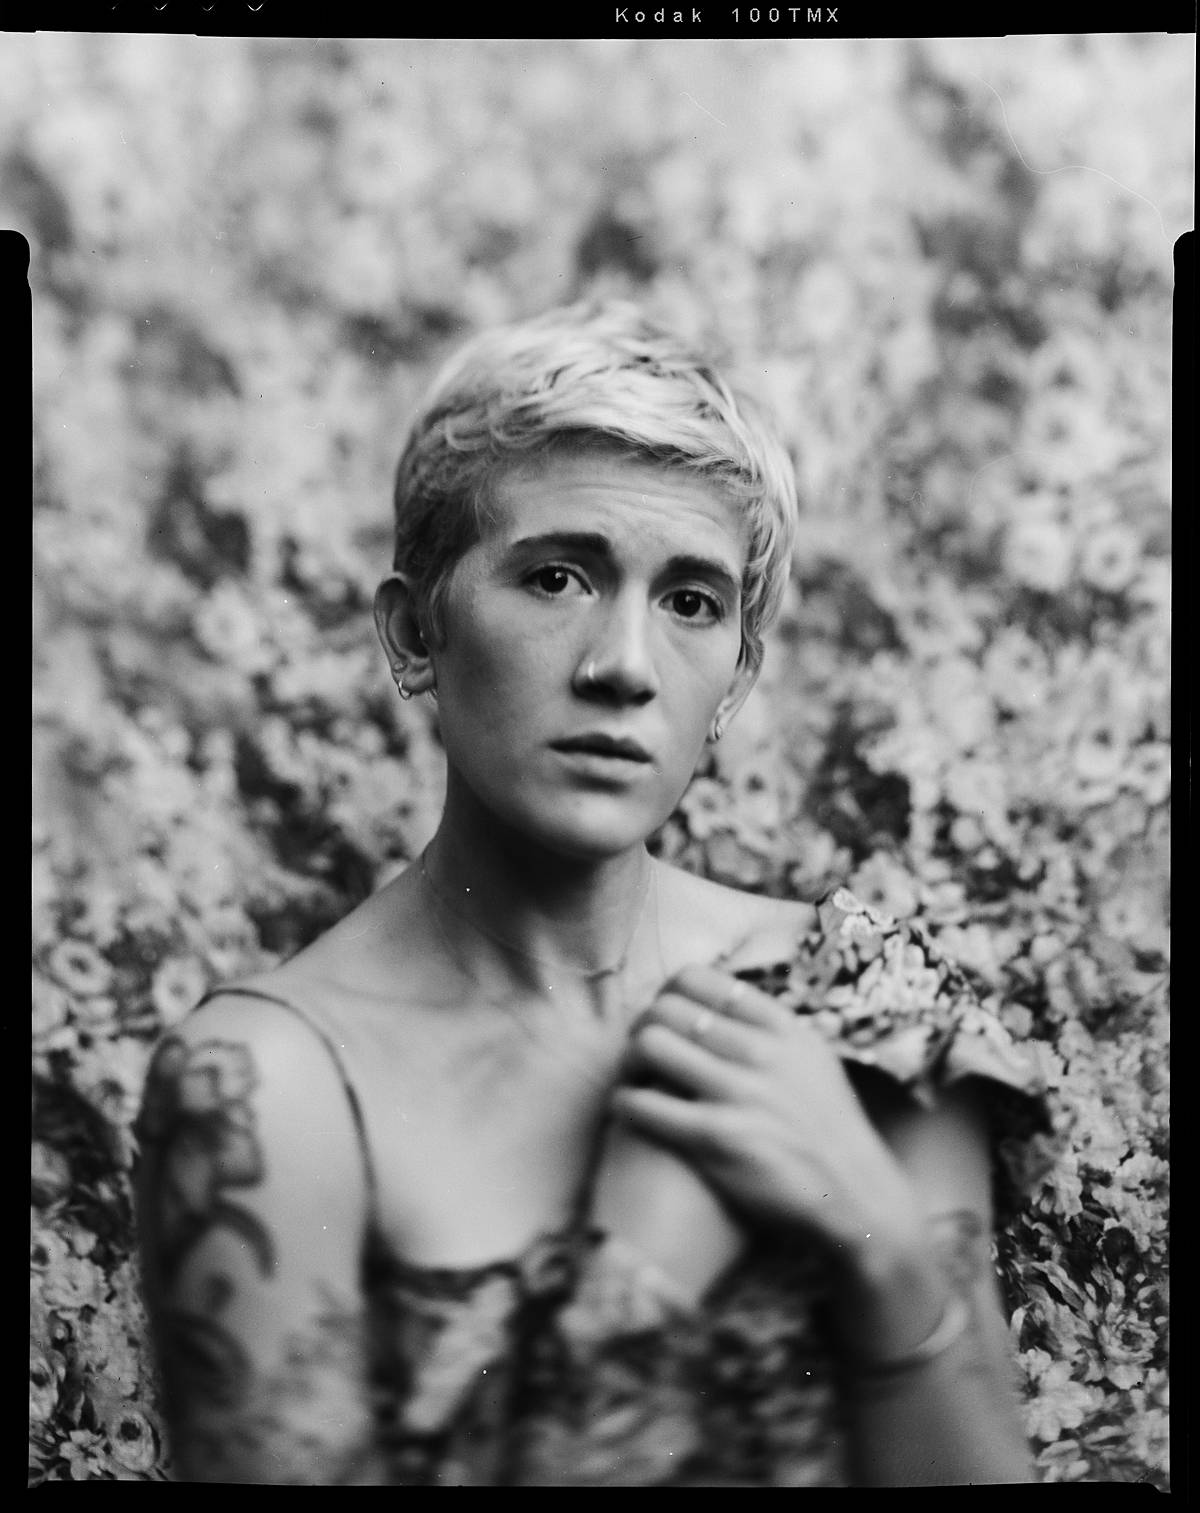 4x5 large format film portrait by brian d smith photography on kodak t-max 100 film and intrepid 4x5 mkiii camera